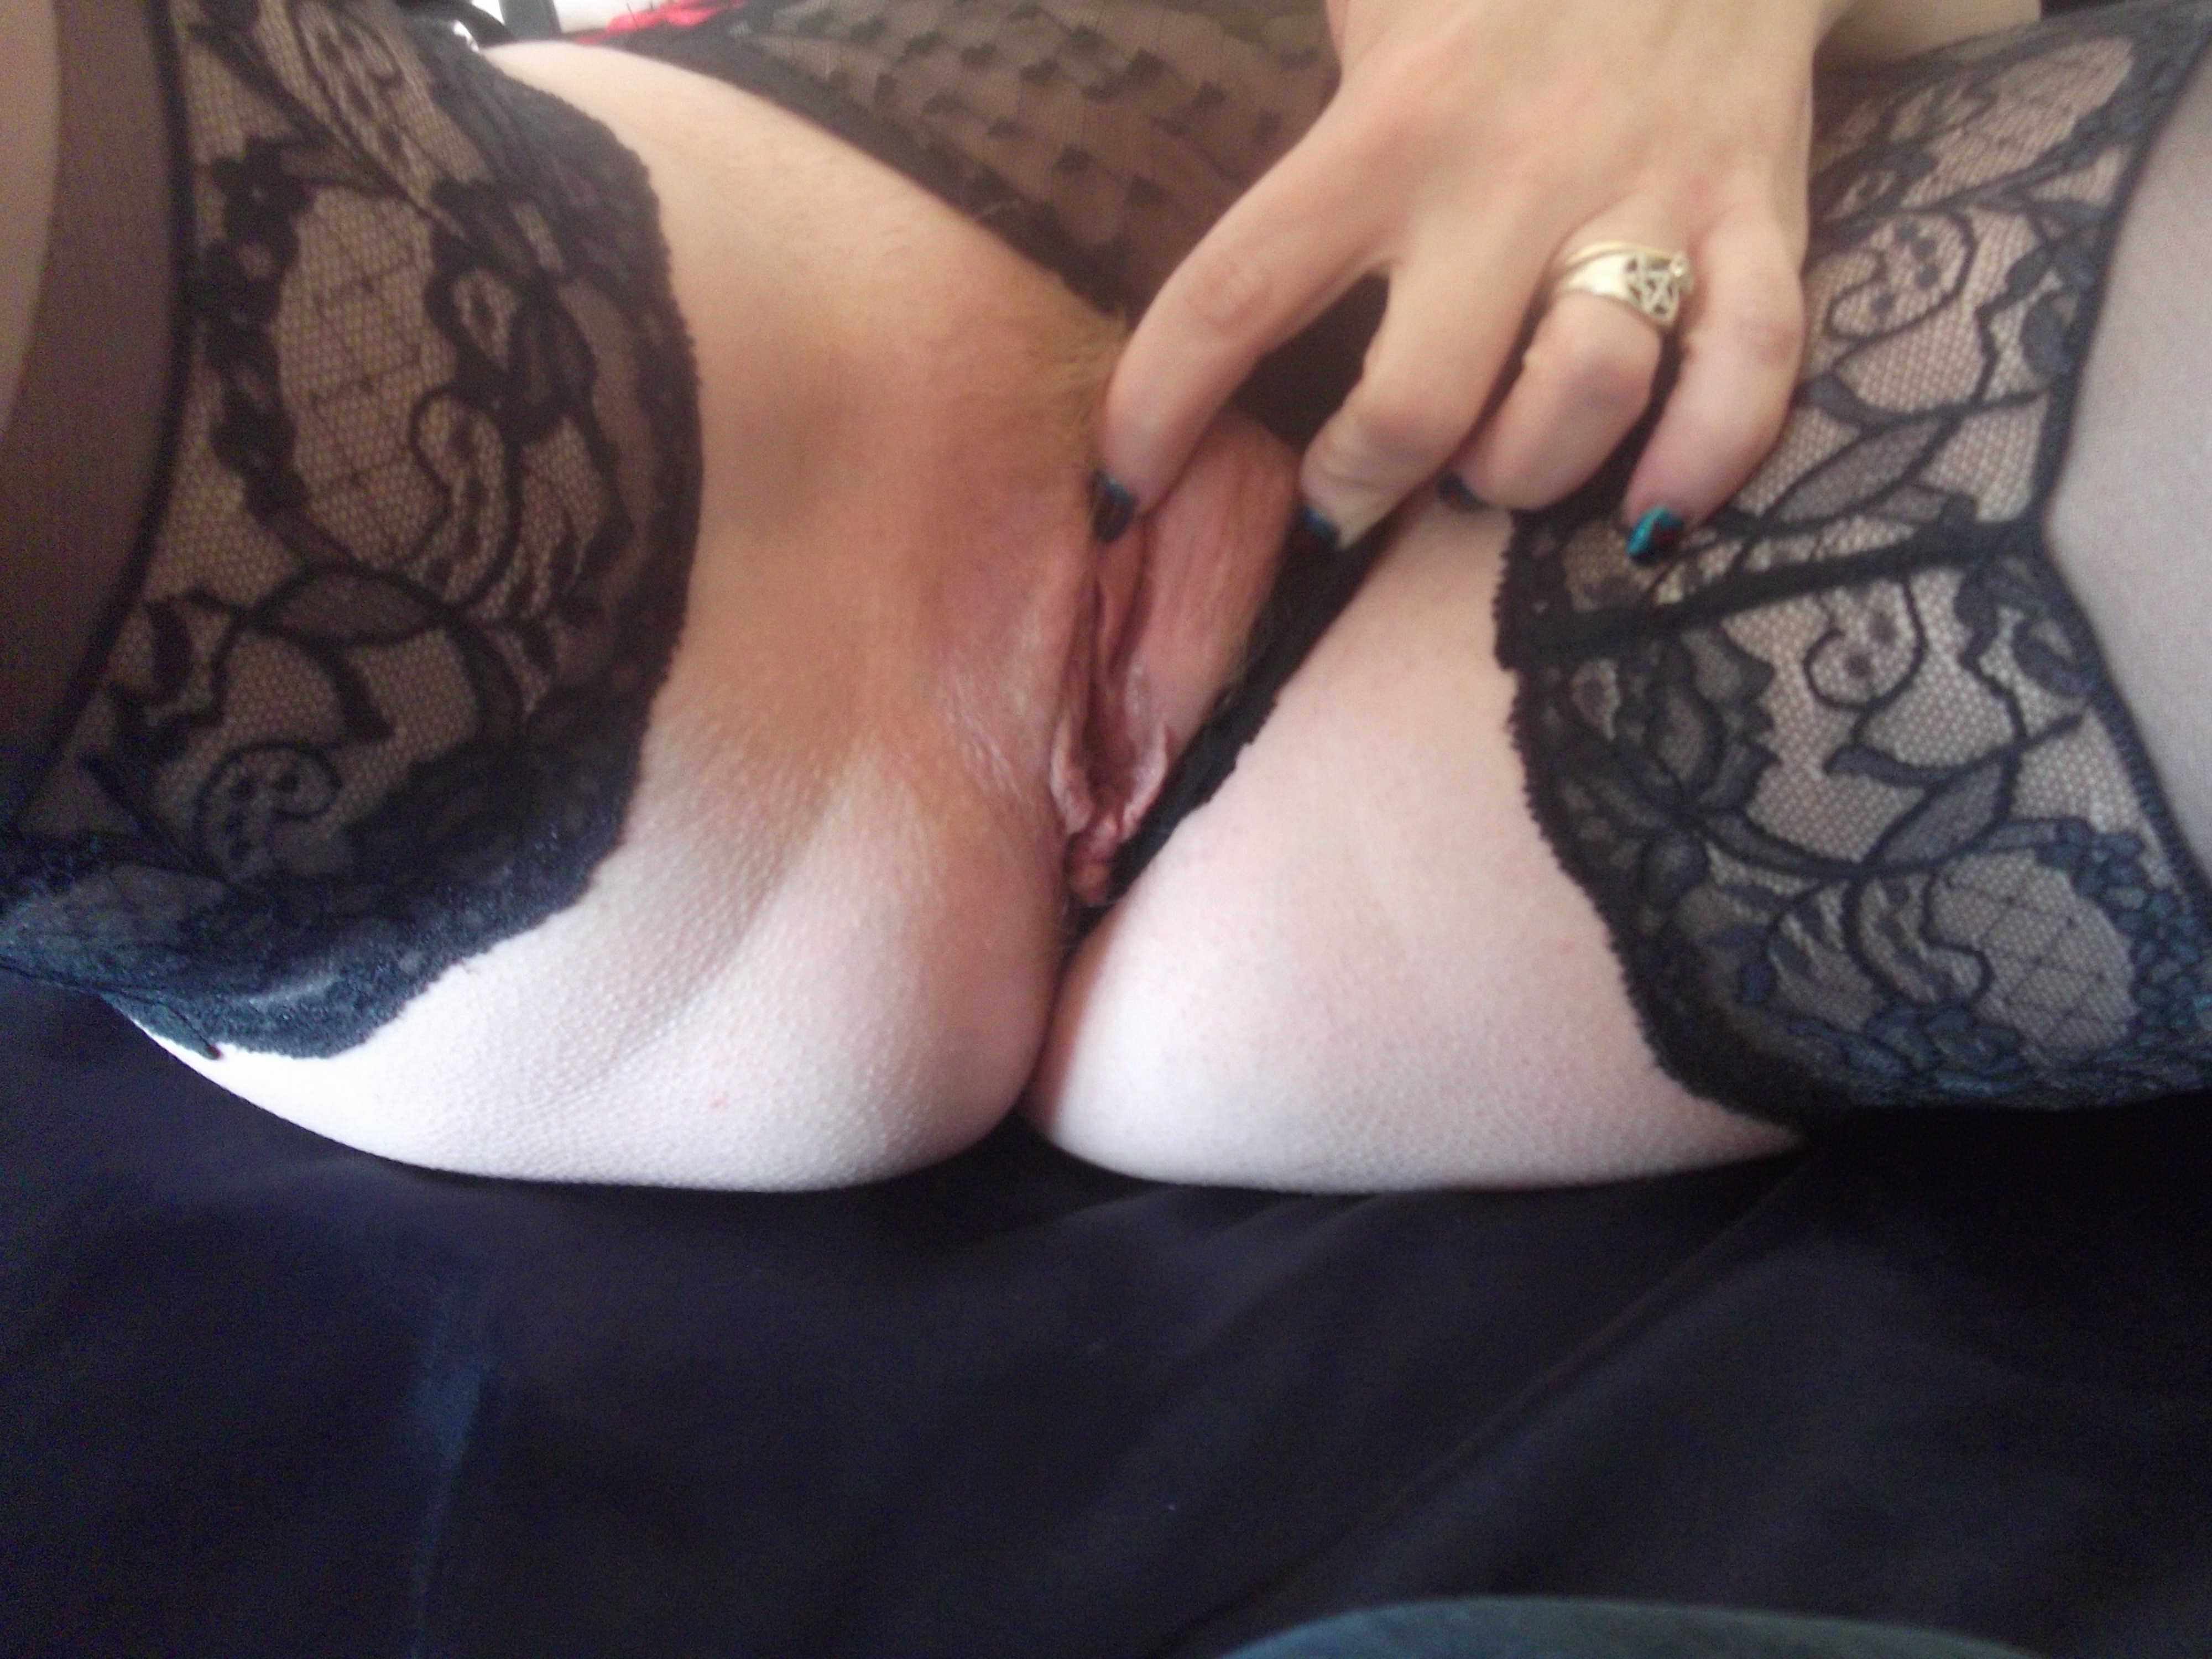 Panties to one side